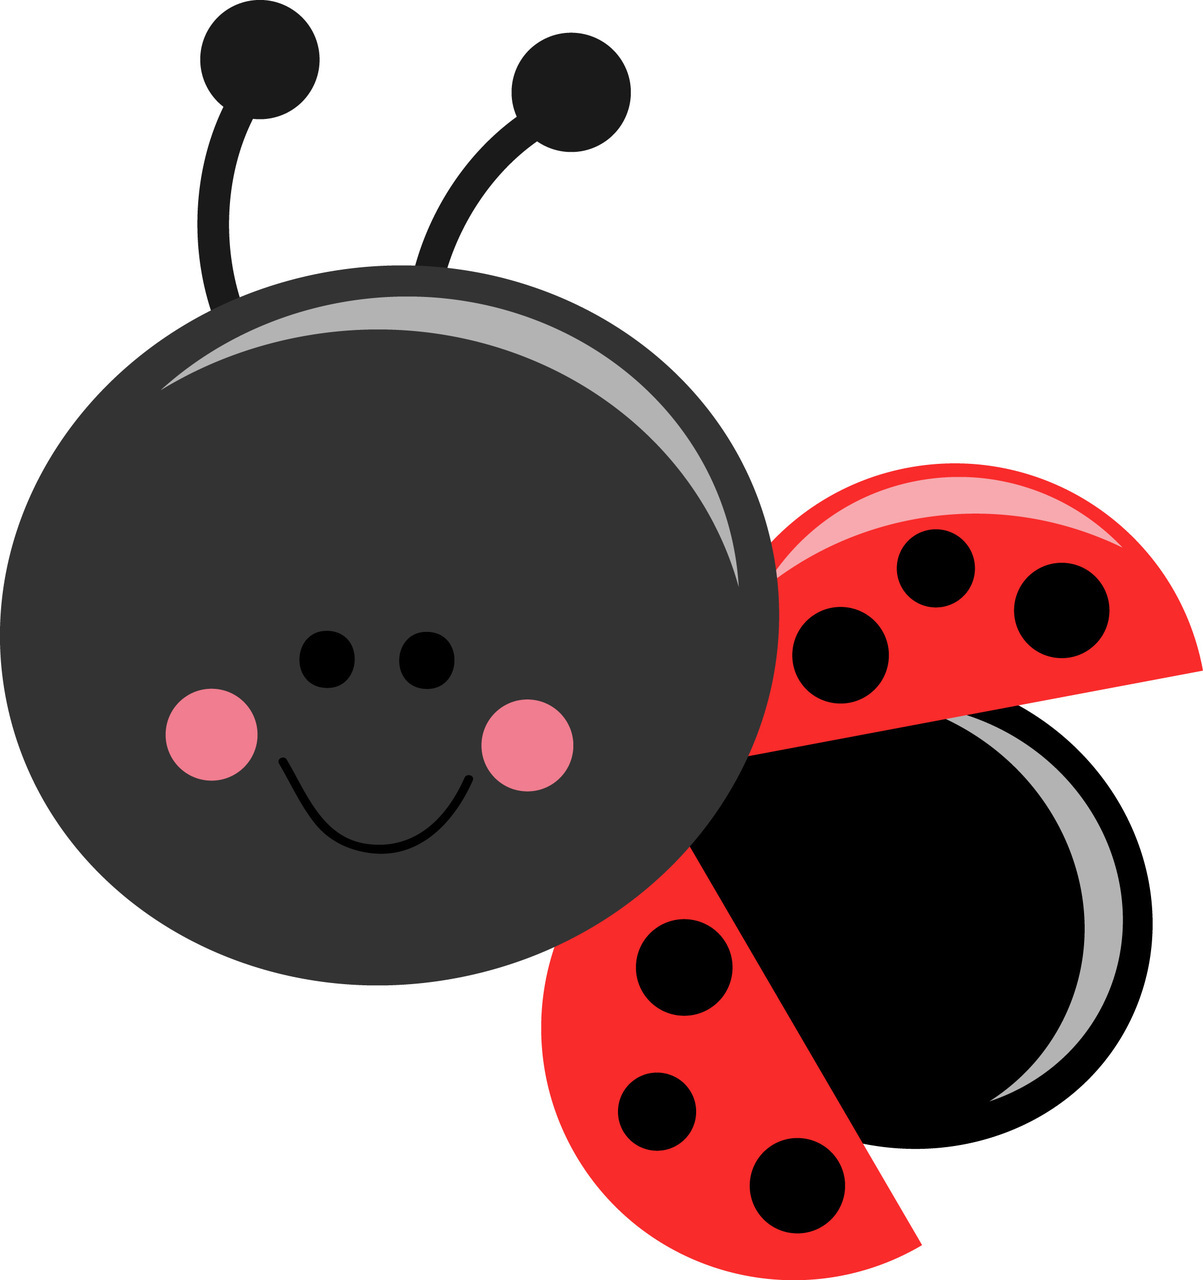 Cute Ladybug Images Clipart Best-Cute Ladybug Images Clipart Best-4